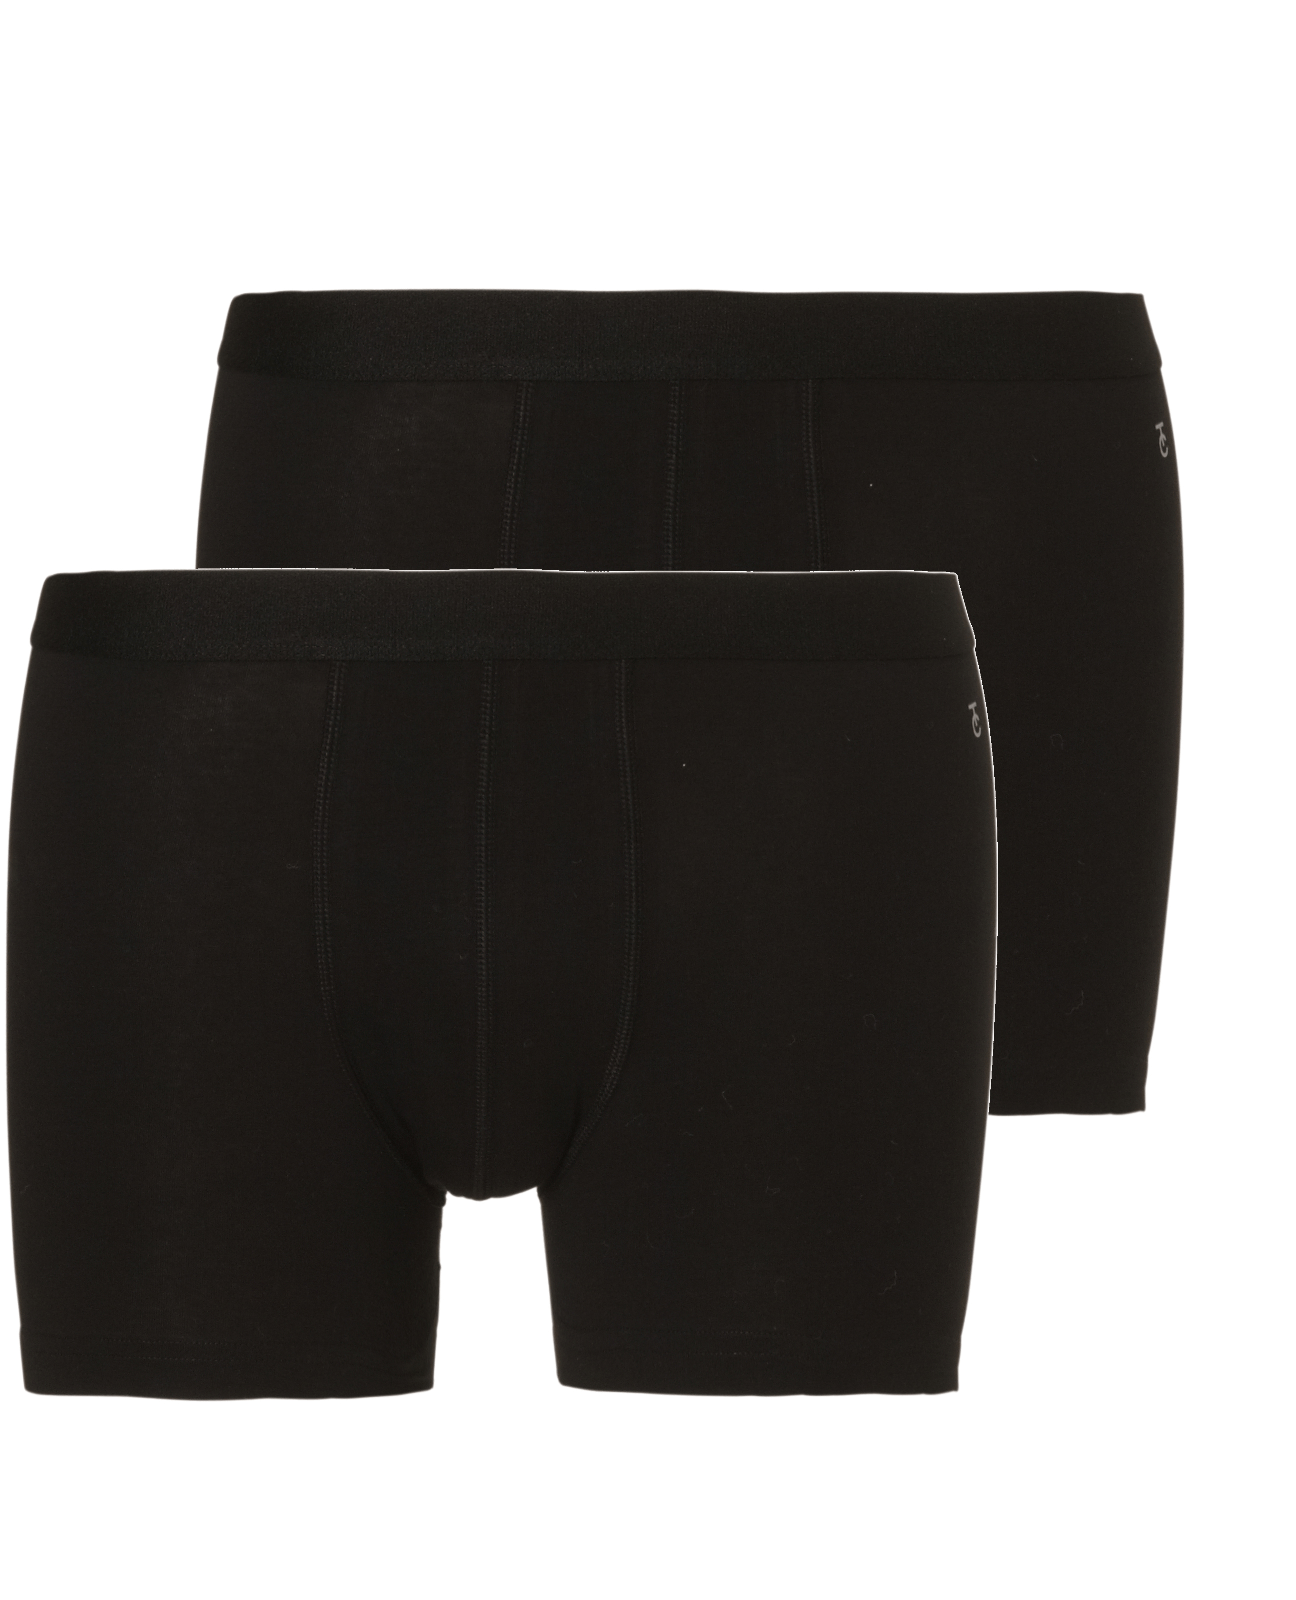 Ten Cate Heren Giftset Heren 2-pack shorts black